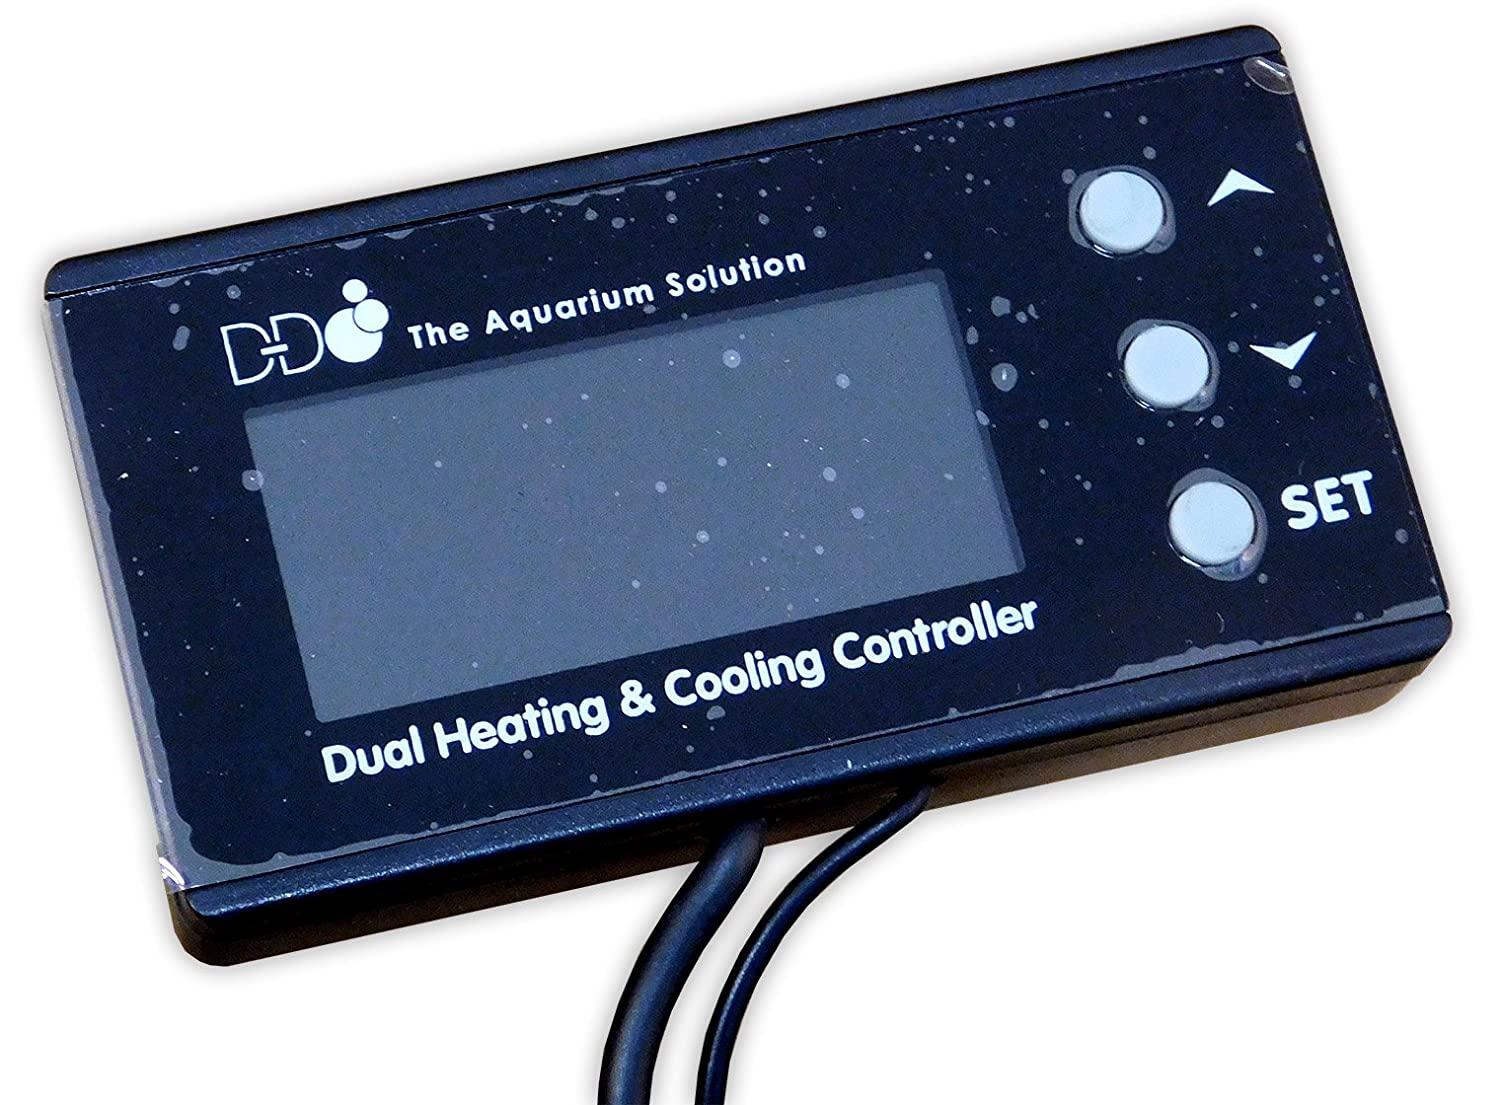 D Dual Heating And Cooling Temperature Controller Stc1000 Build Canadriancom Pet Supplies